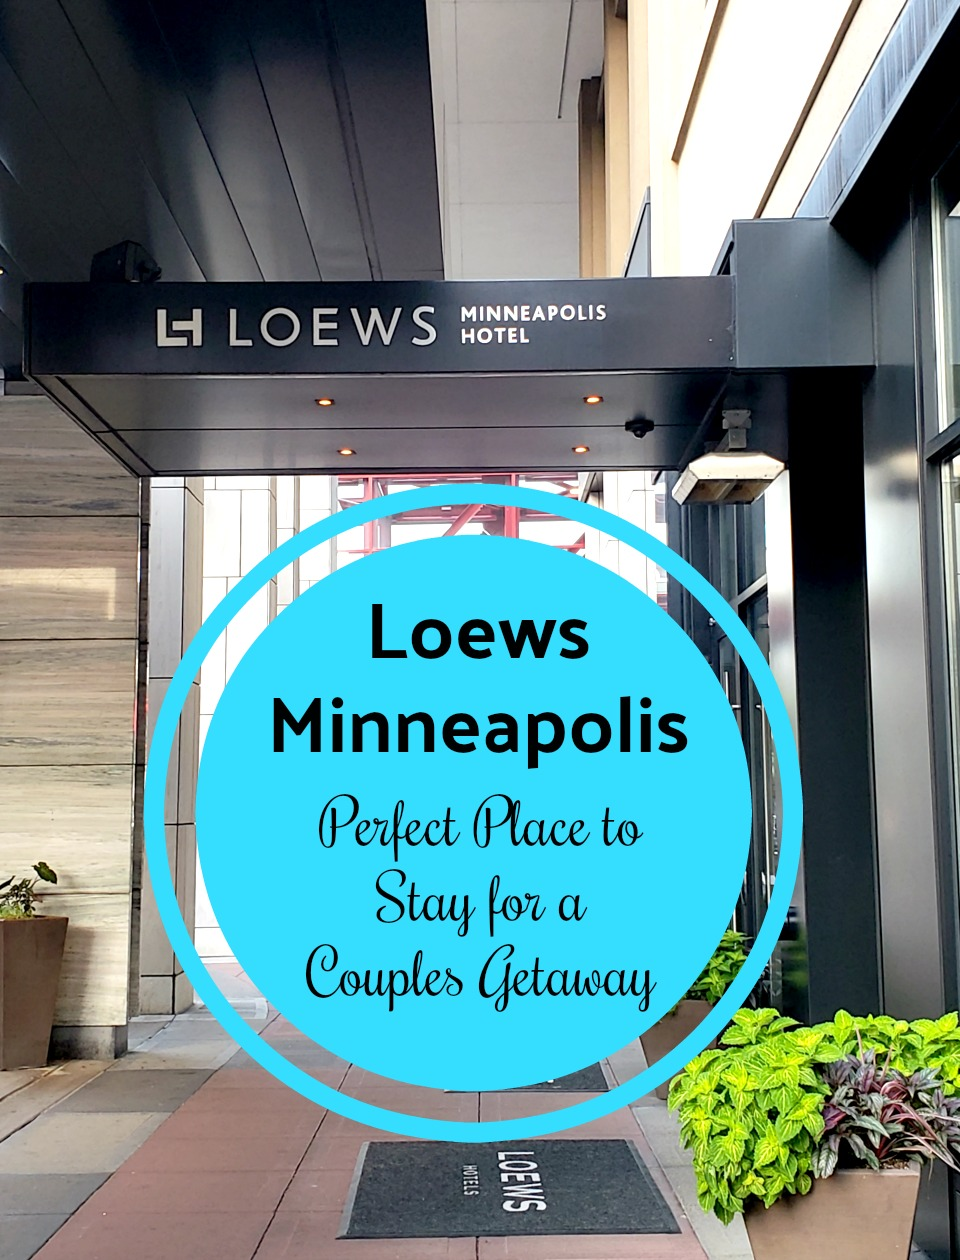 Couples Getaway in Minneapolis - Stay at Loews Minneapolis Hotel